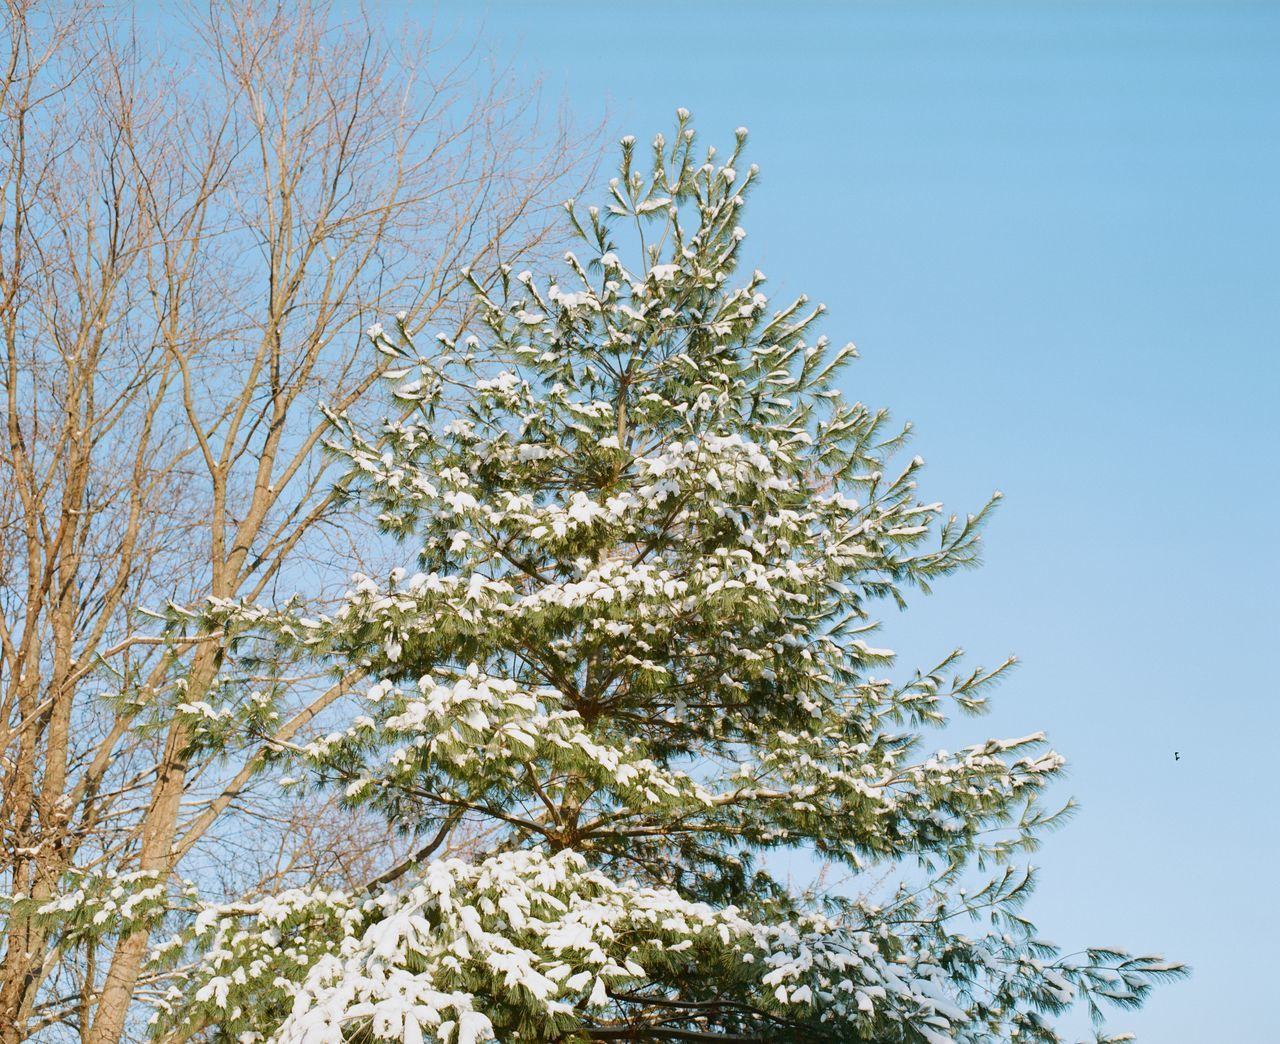 tree, low angle view, branch, clear sky, nature, growth, no people, day, beauty in nature, outdoors, sky, blue, flower, freshness, close-up